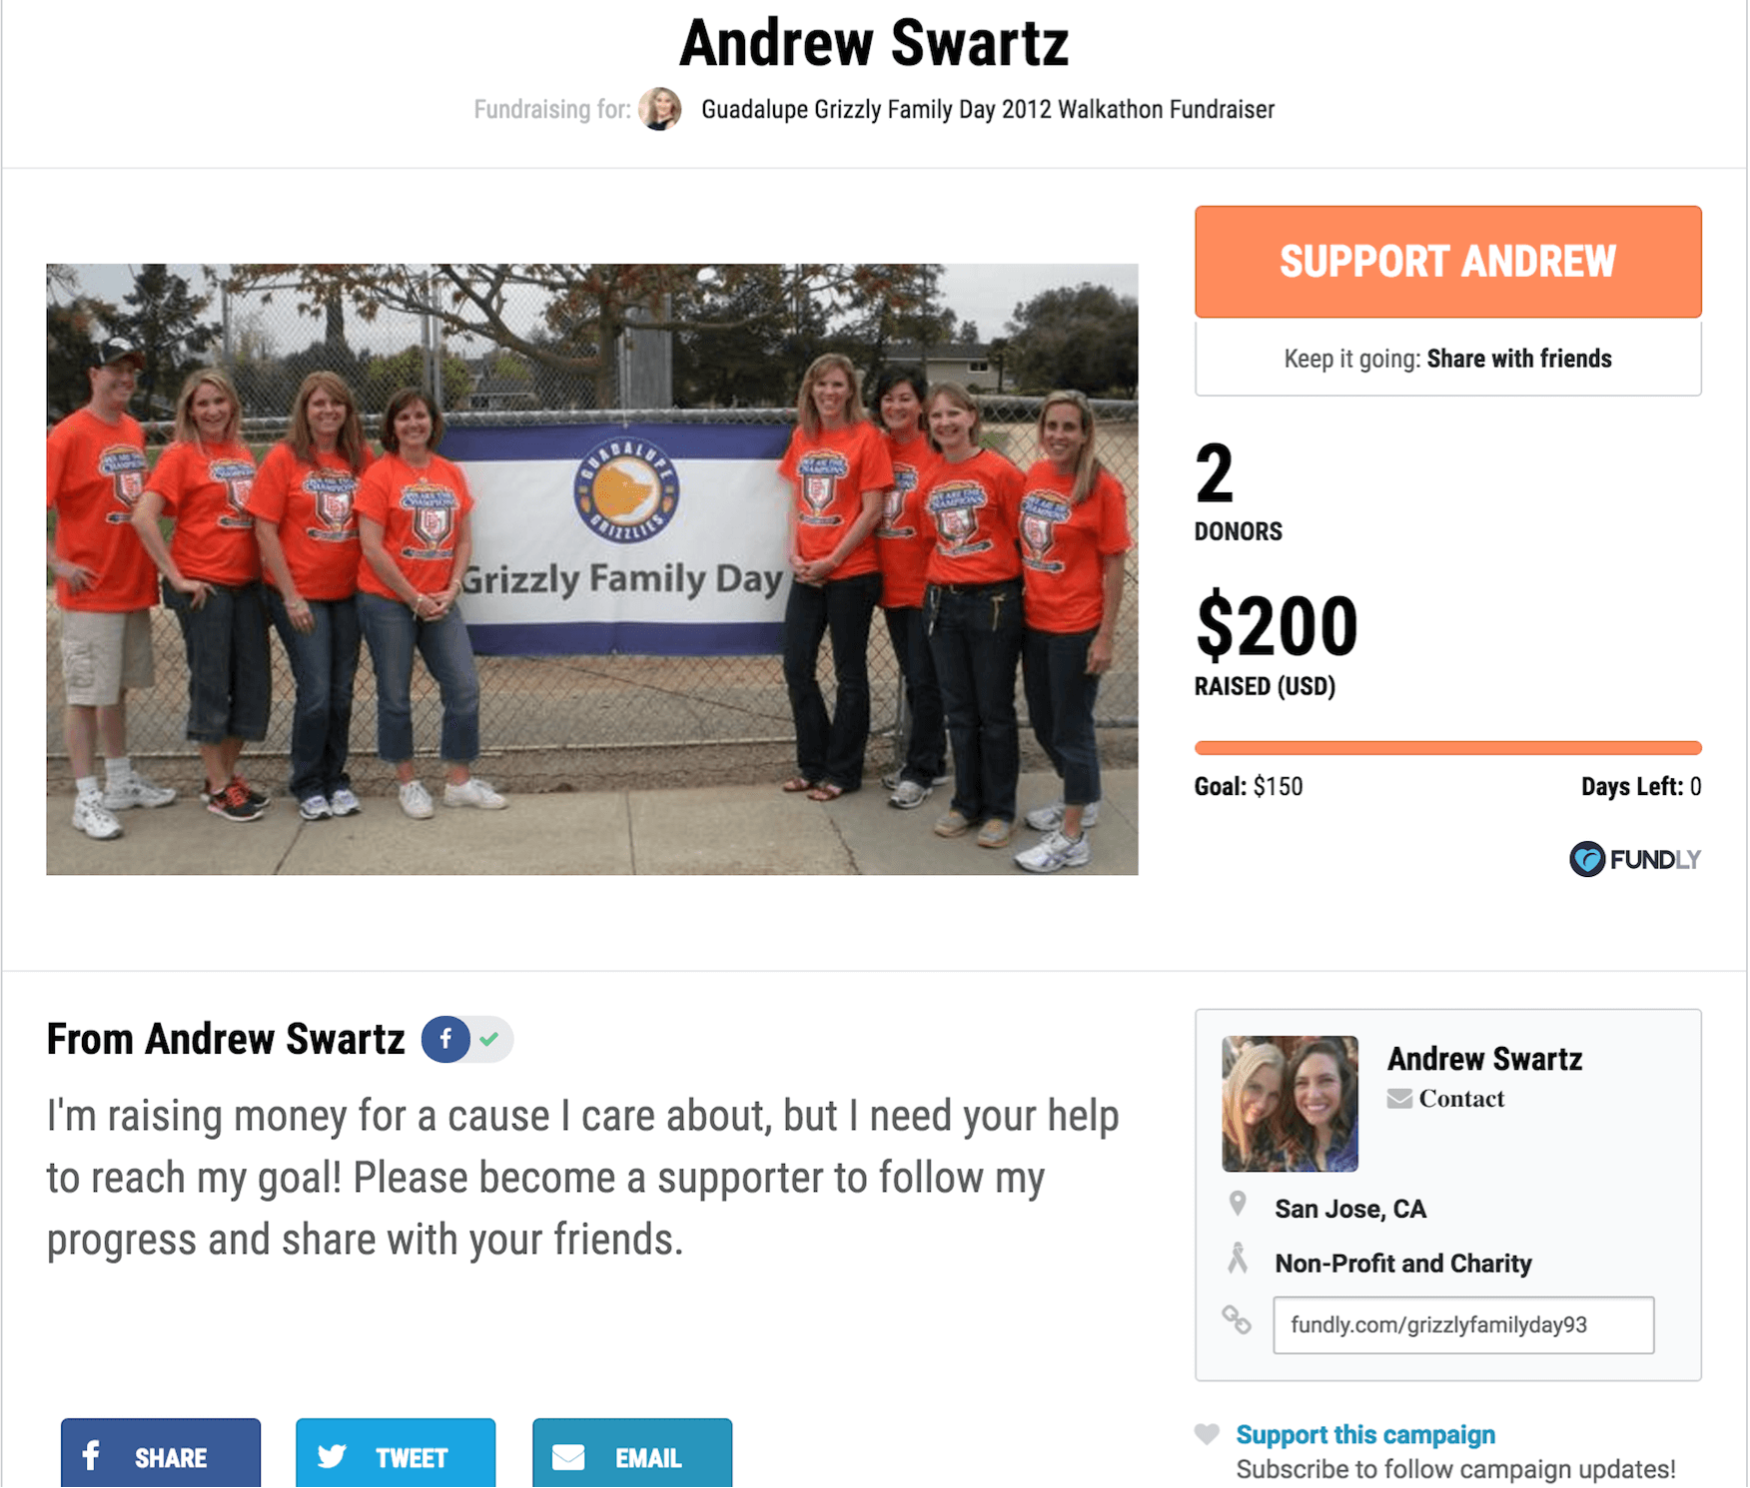 This crowdfunding campaign met its goal, and supported the walkathon in the process.